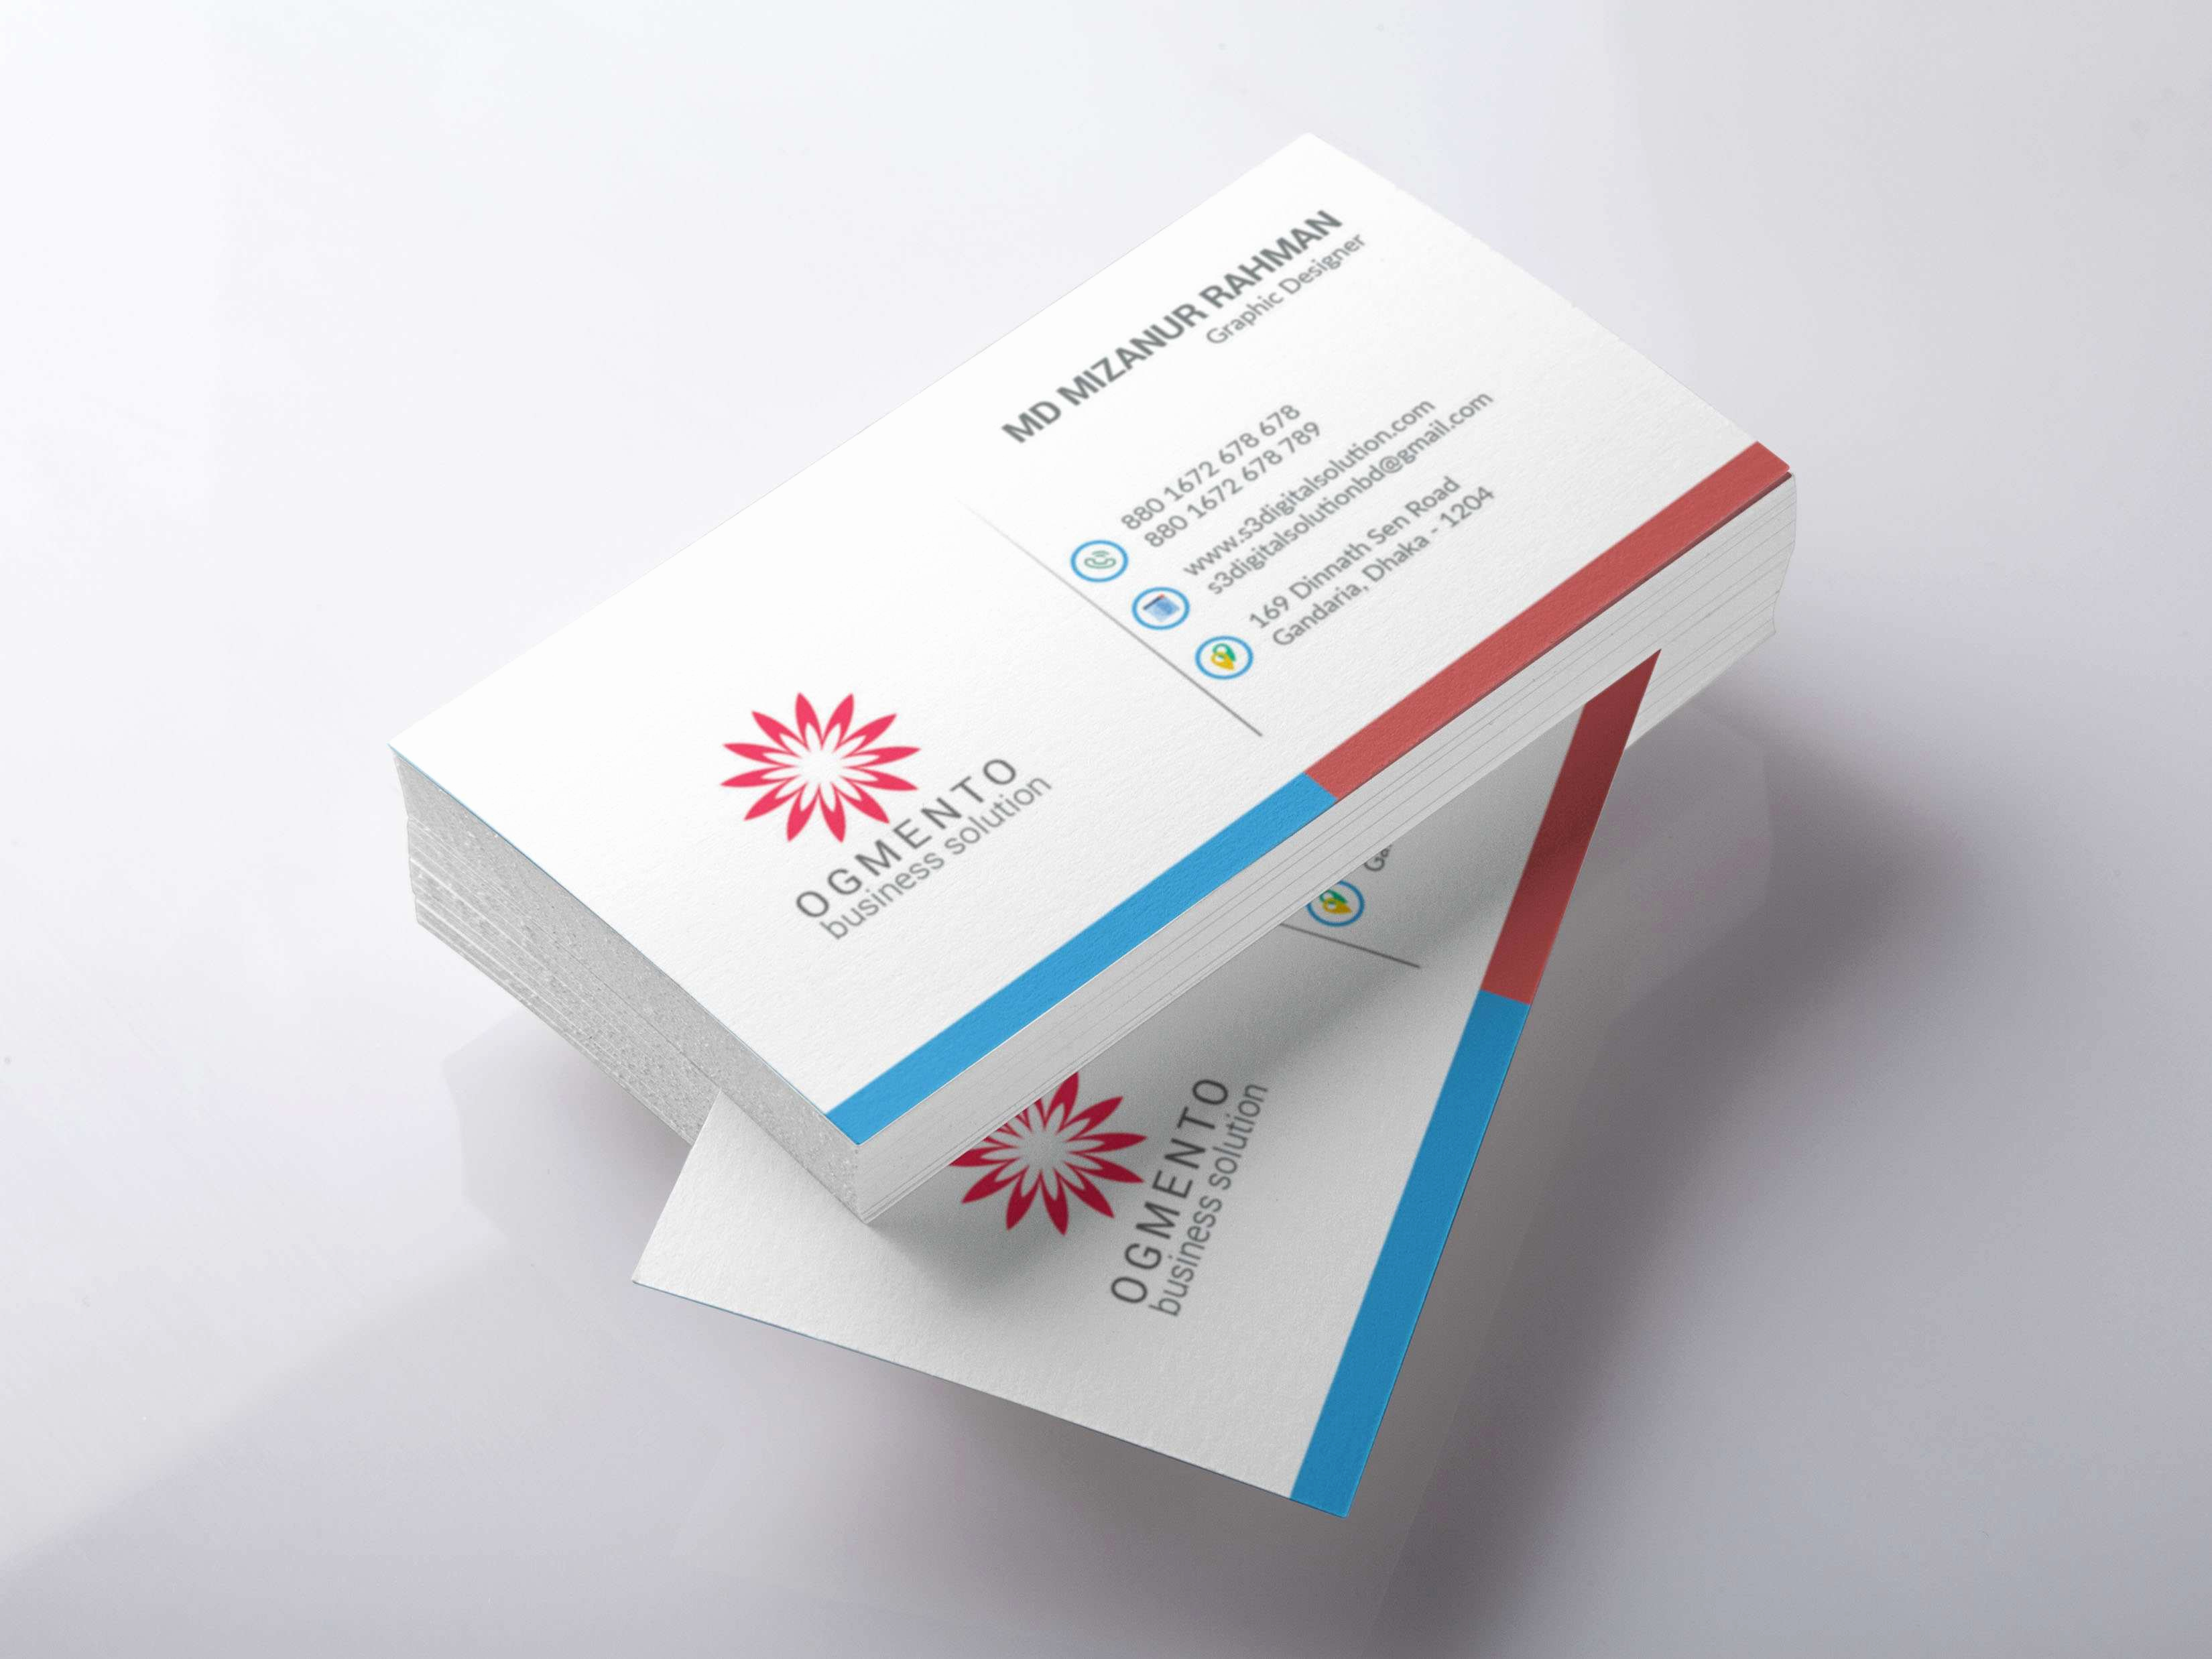 office depot business card template inspirational business cards at fice depot card design and card template